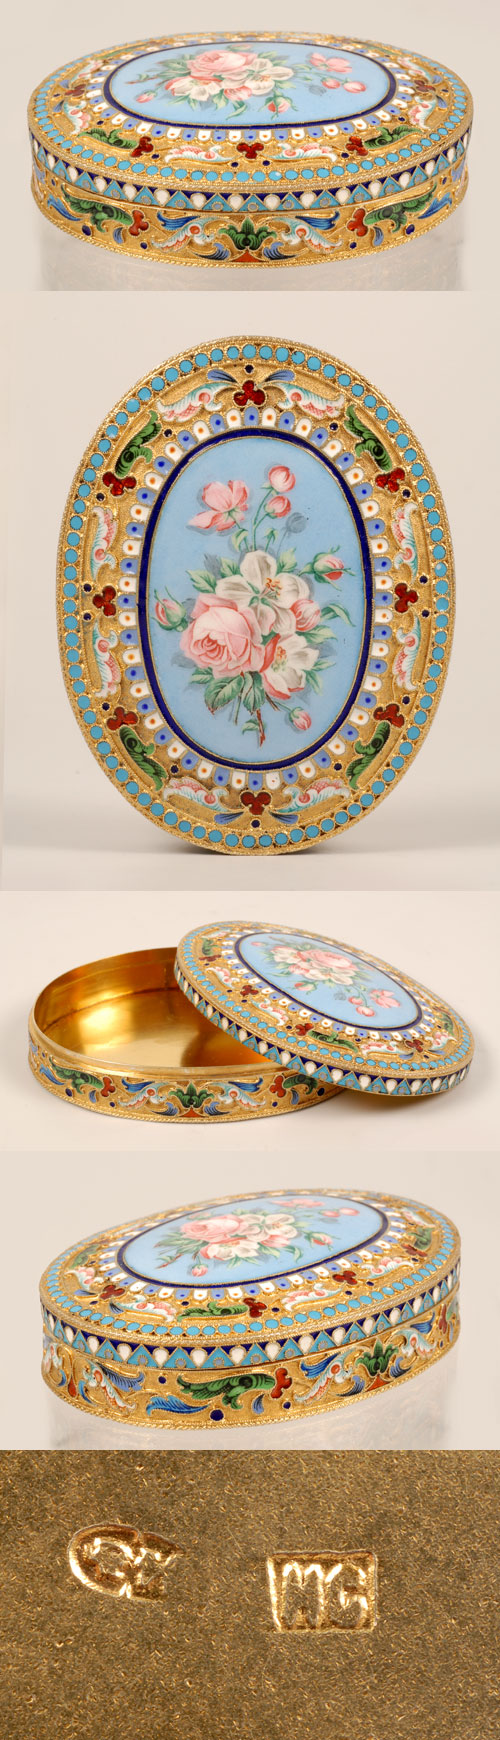 A Russian silver gilt, cloisonne and en plein enamel box, Russian Cloisonne Faberge Art /Russian Art : More At FOSTERGINGER @ Pinterest